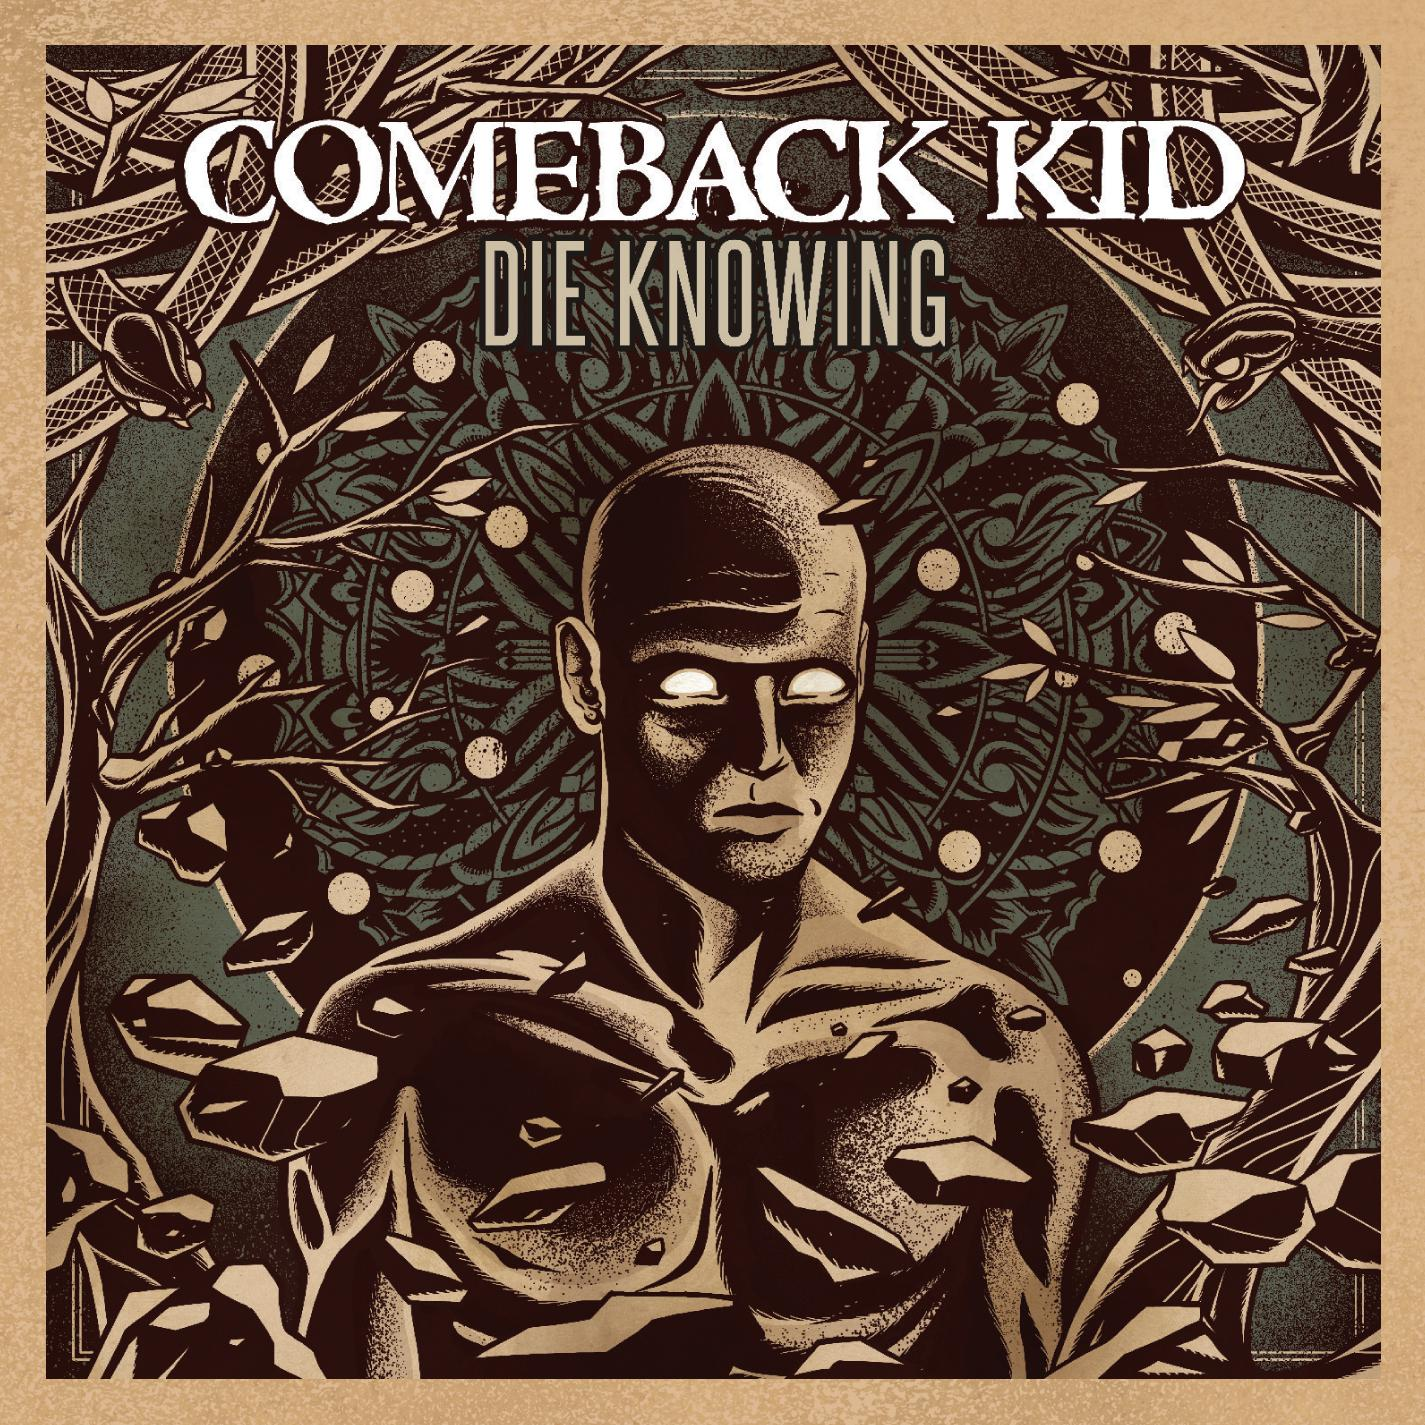 """News Added Jan 22, 2014 """"The goal with Die Knowing was to really capture the best parts of our live show and put those elements into the album. Lyrically, it's a reminder to stay hungry while carving your own path, living life to its full potential. This will be the biggest and heaviest sounding Comeback […]"""